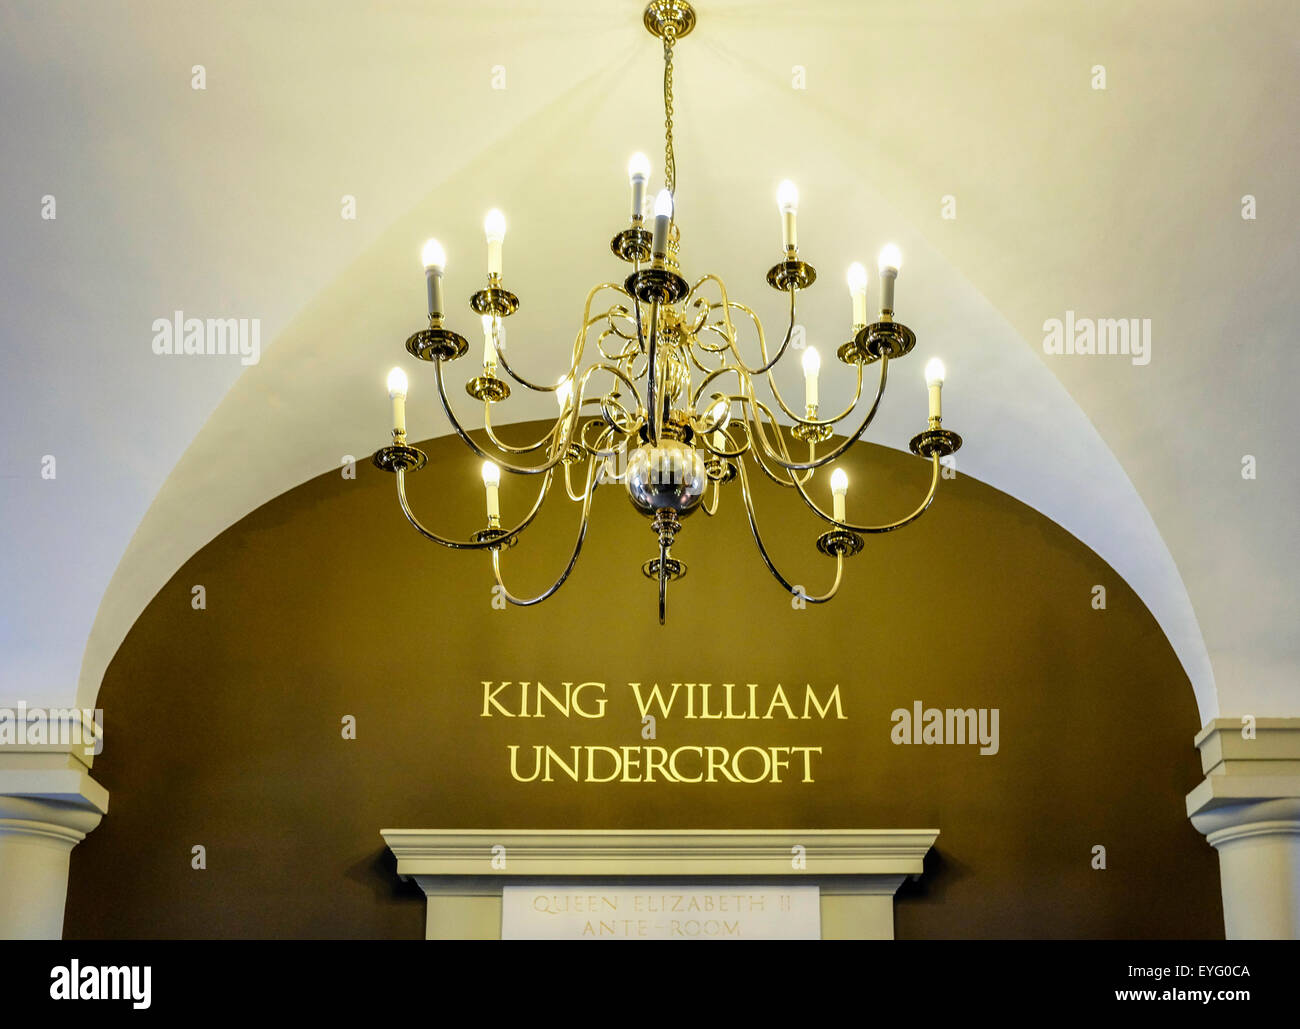 King william undercroft sign and chandelier old royal naval college king william undercroft sign and chandelier old royal naval college greenwich london arubaitofo Images